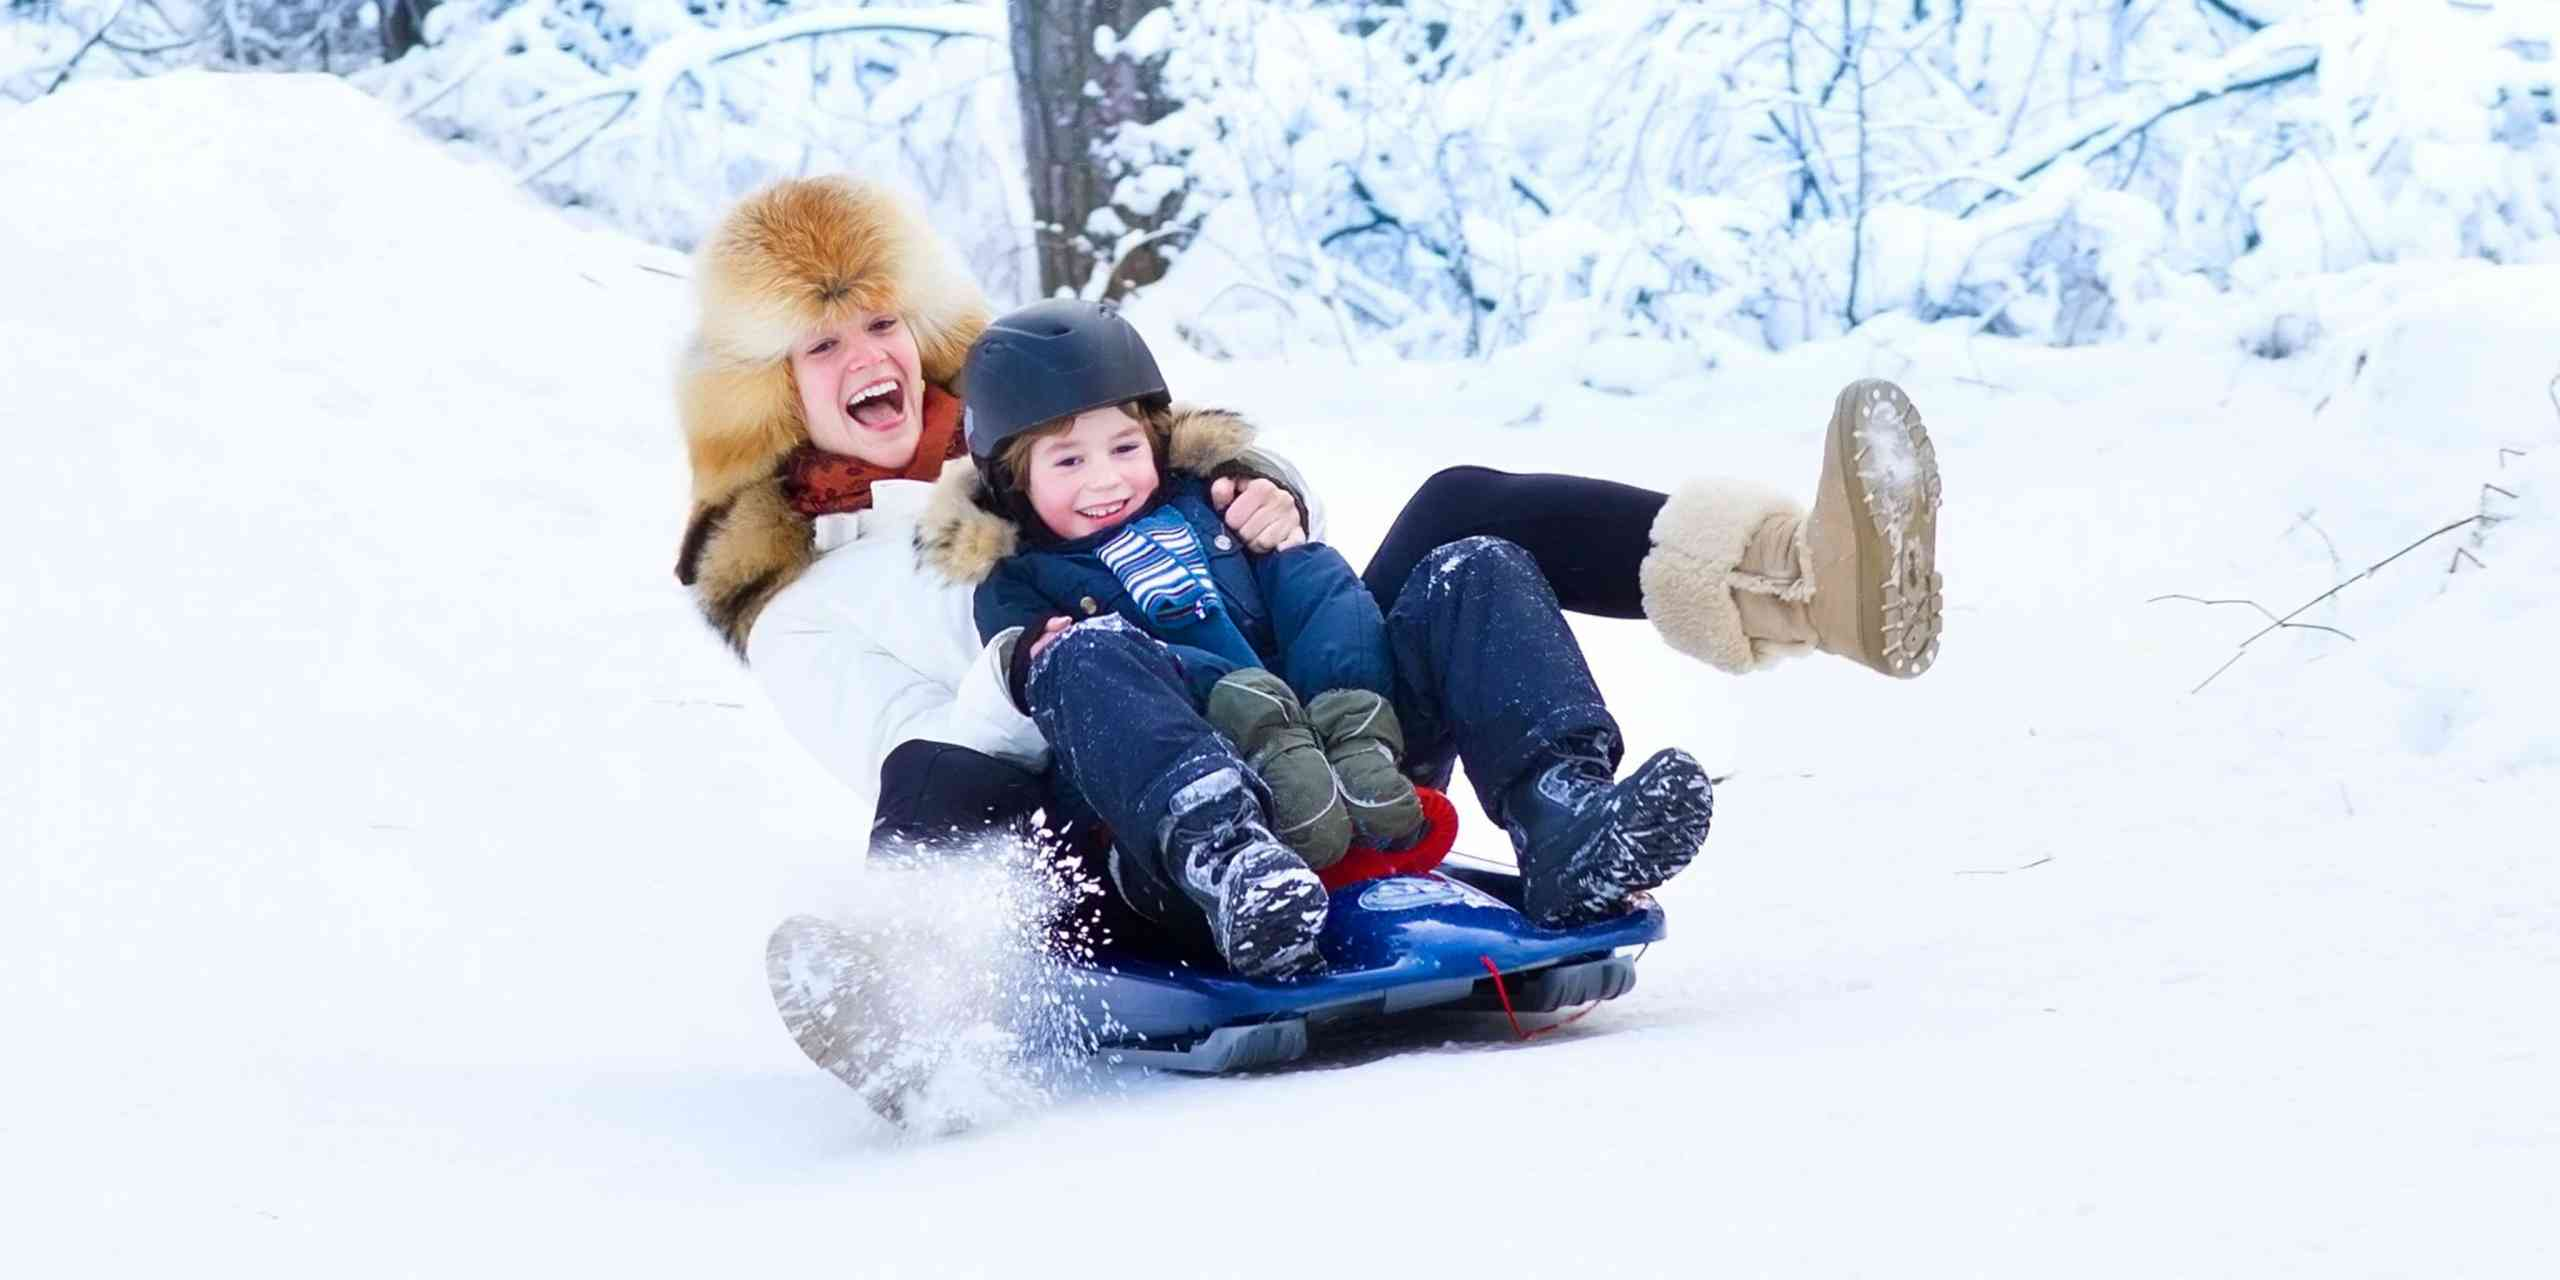 Top 5 Snow Sledges and tubes to maximize fun